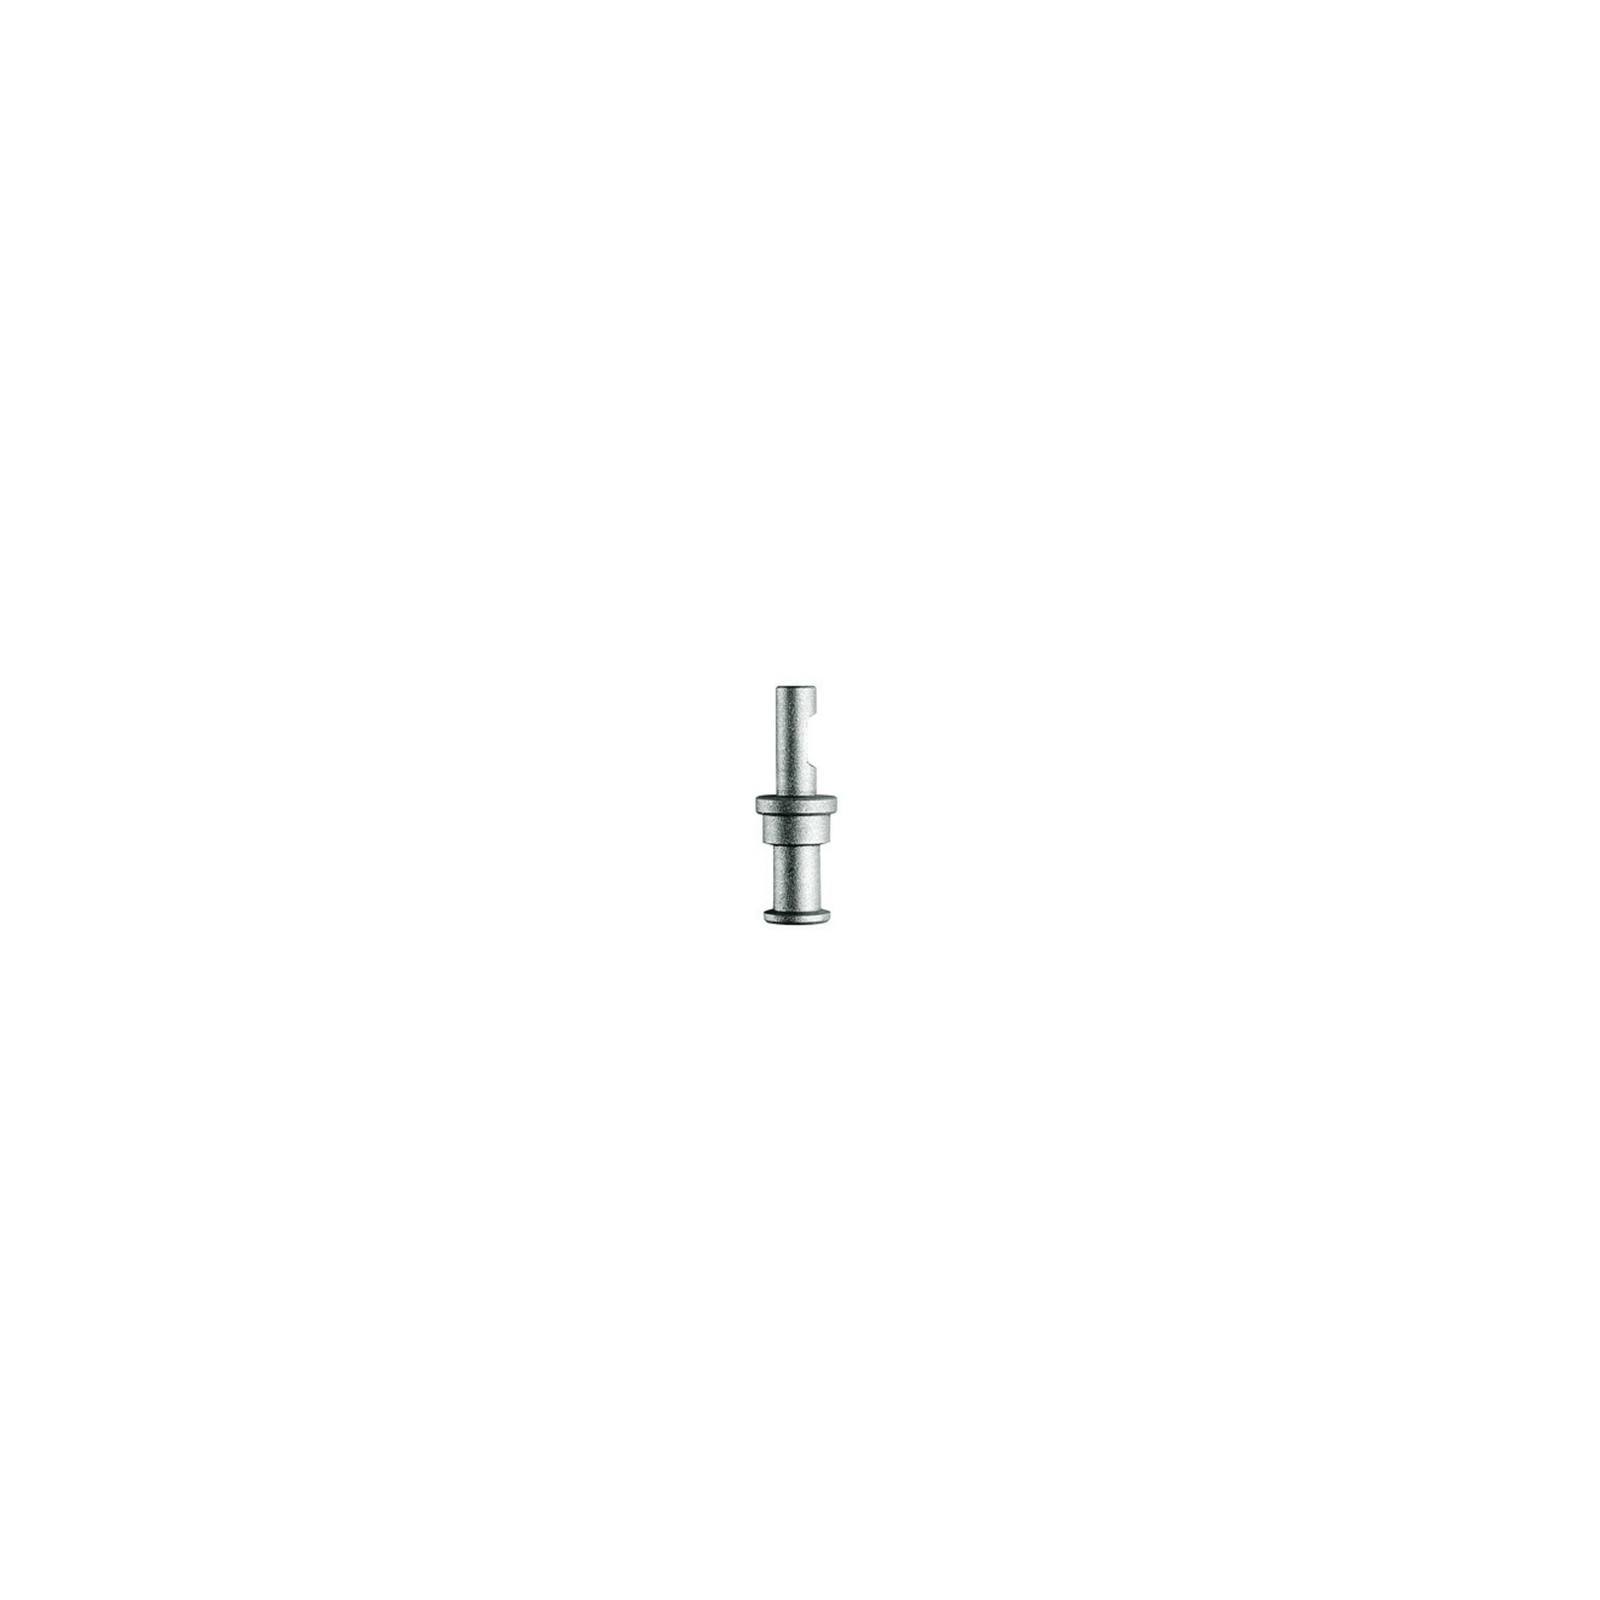 Manfrotto 192 Adapter 5/8'' M - 3/8'' Male